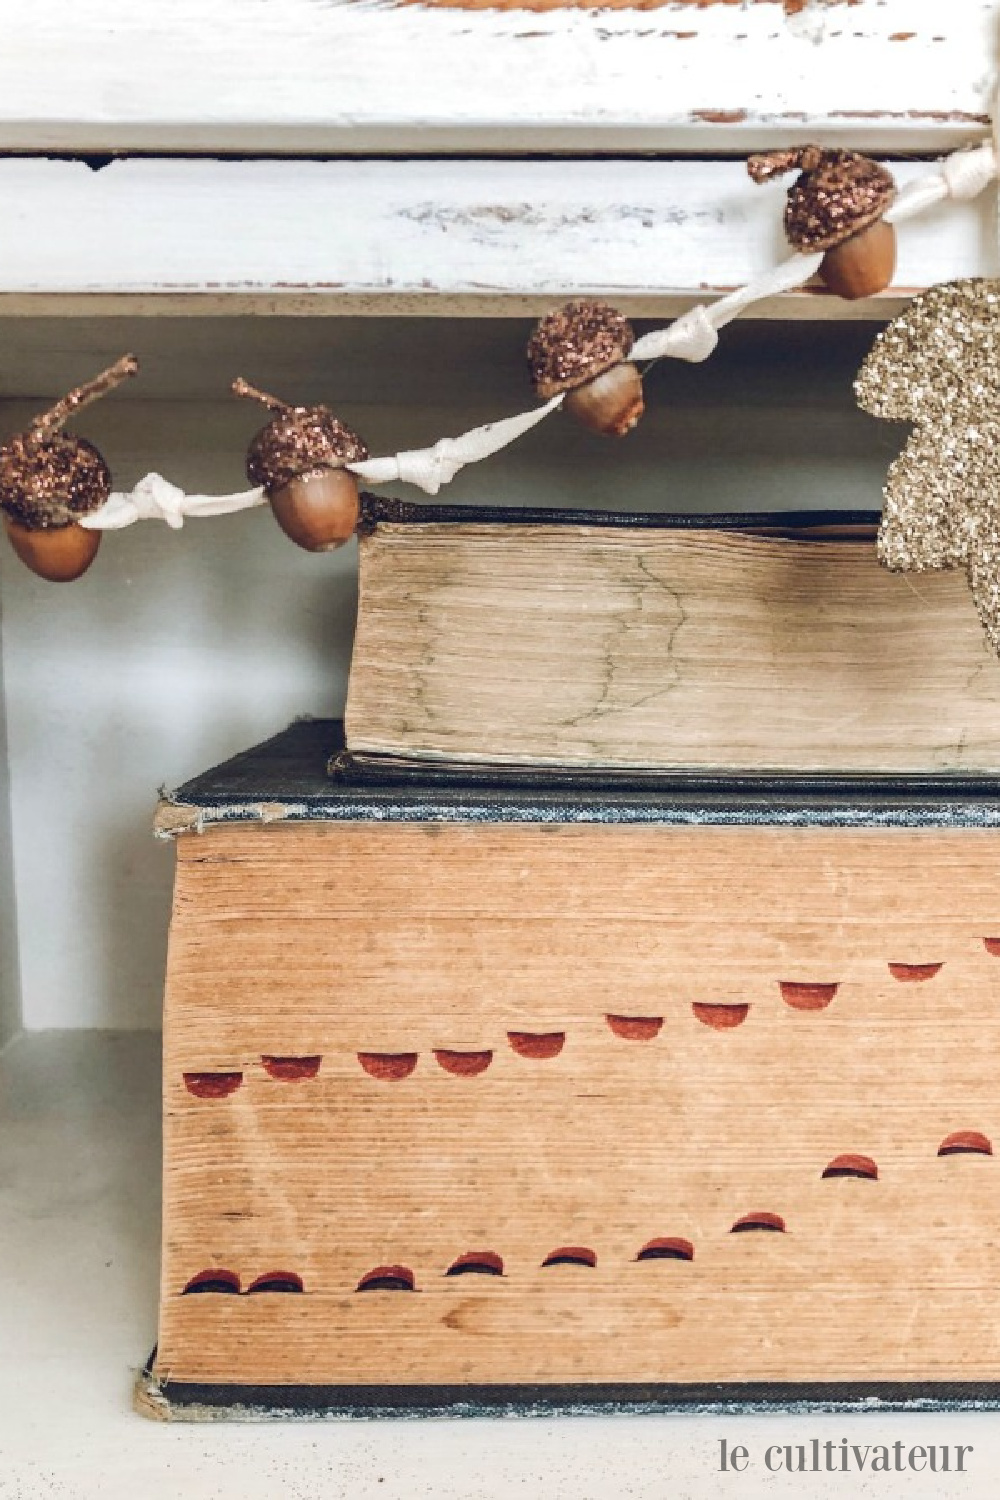 Charming fall acorn garland on a shelf with vintage books sporting aged pages - Le Cultivateur. #acornwreath #falldecor #countrydecor